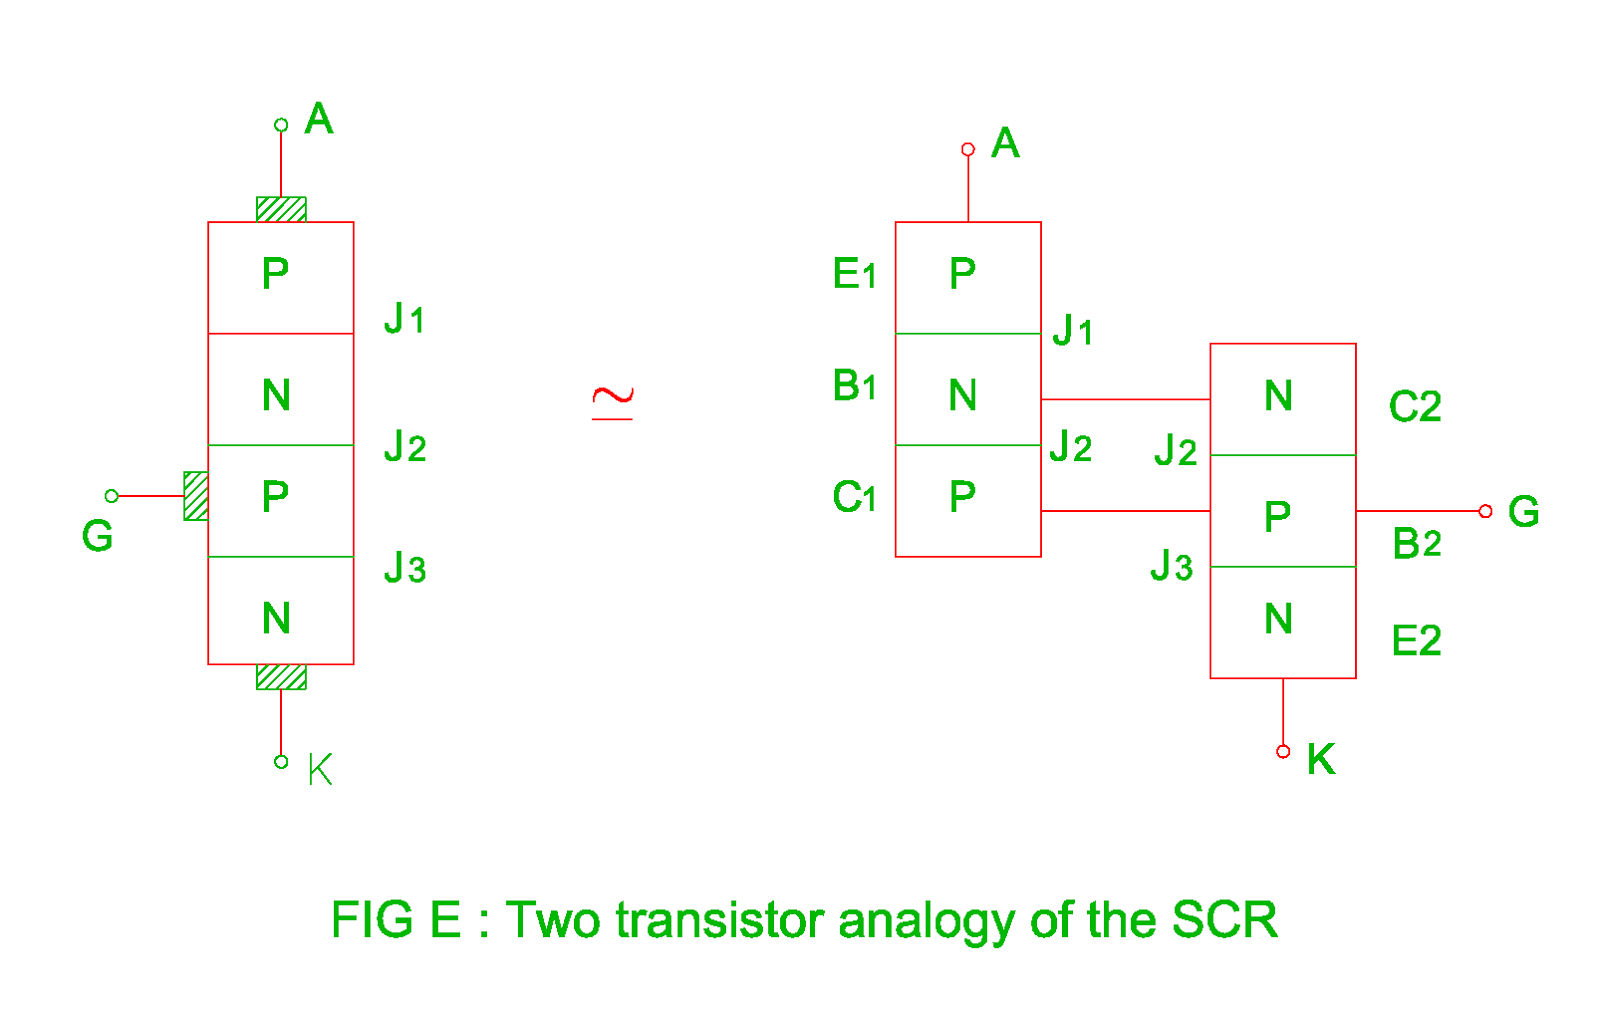 Circuit Diagram For An And Gate As Two Transistors Connected Together